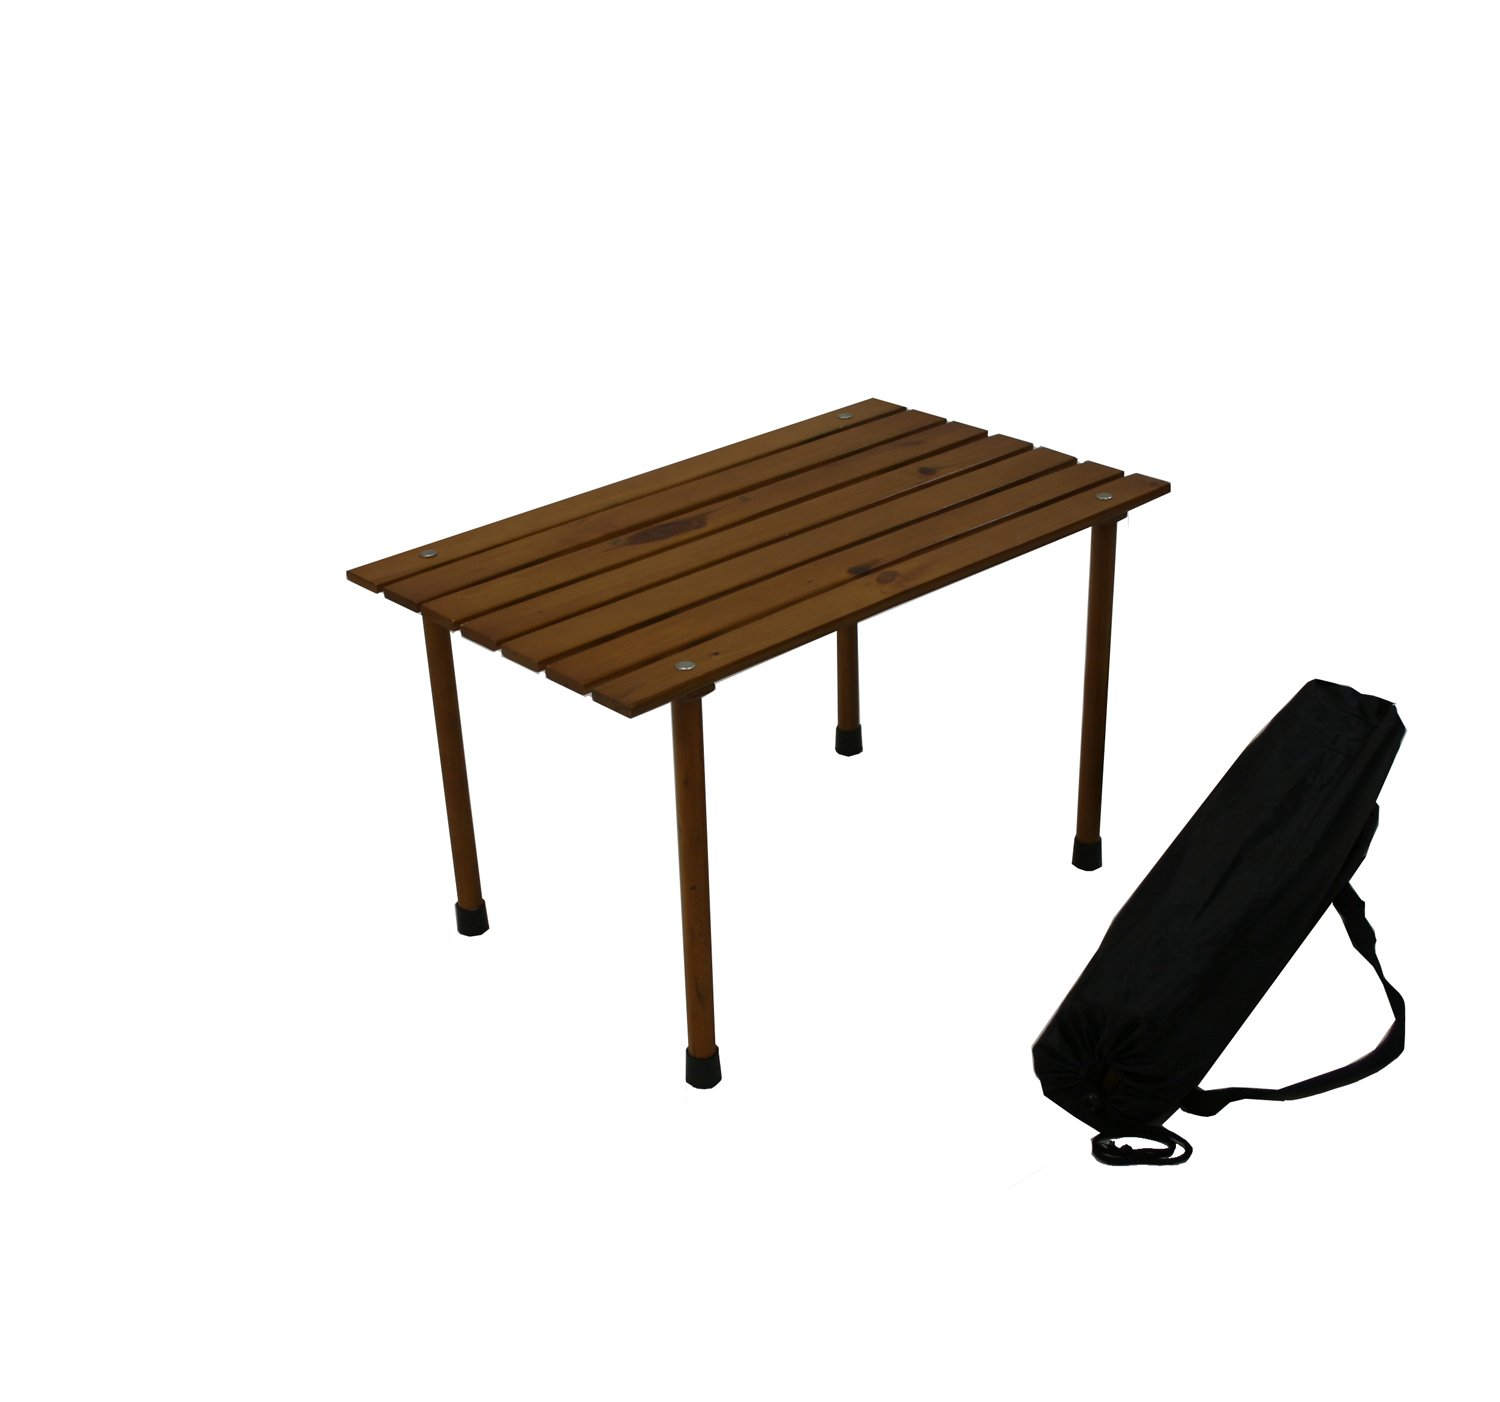 CDM product Table in a Bag LLW1527 Small Low Wood Portable Table with Carrying Bag, Brown small thumbnail image